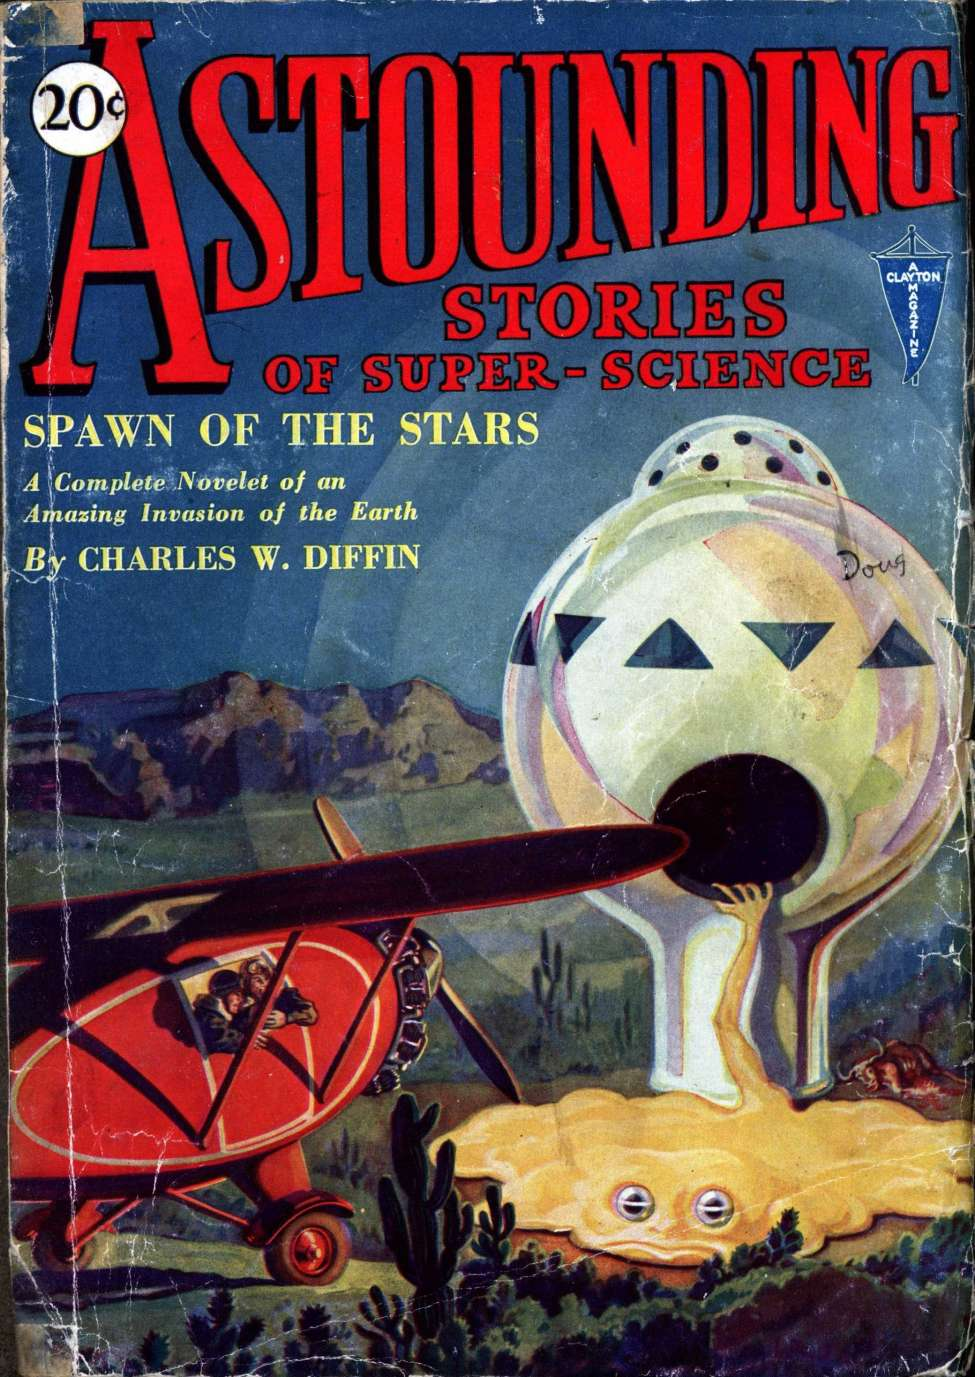 Comic Book Cover For Astounding v01 02 - Spawn of the Stars - Charles W. Diffin